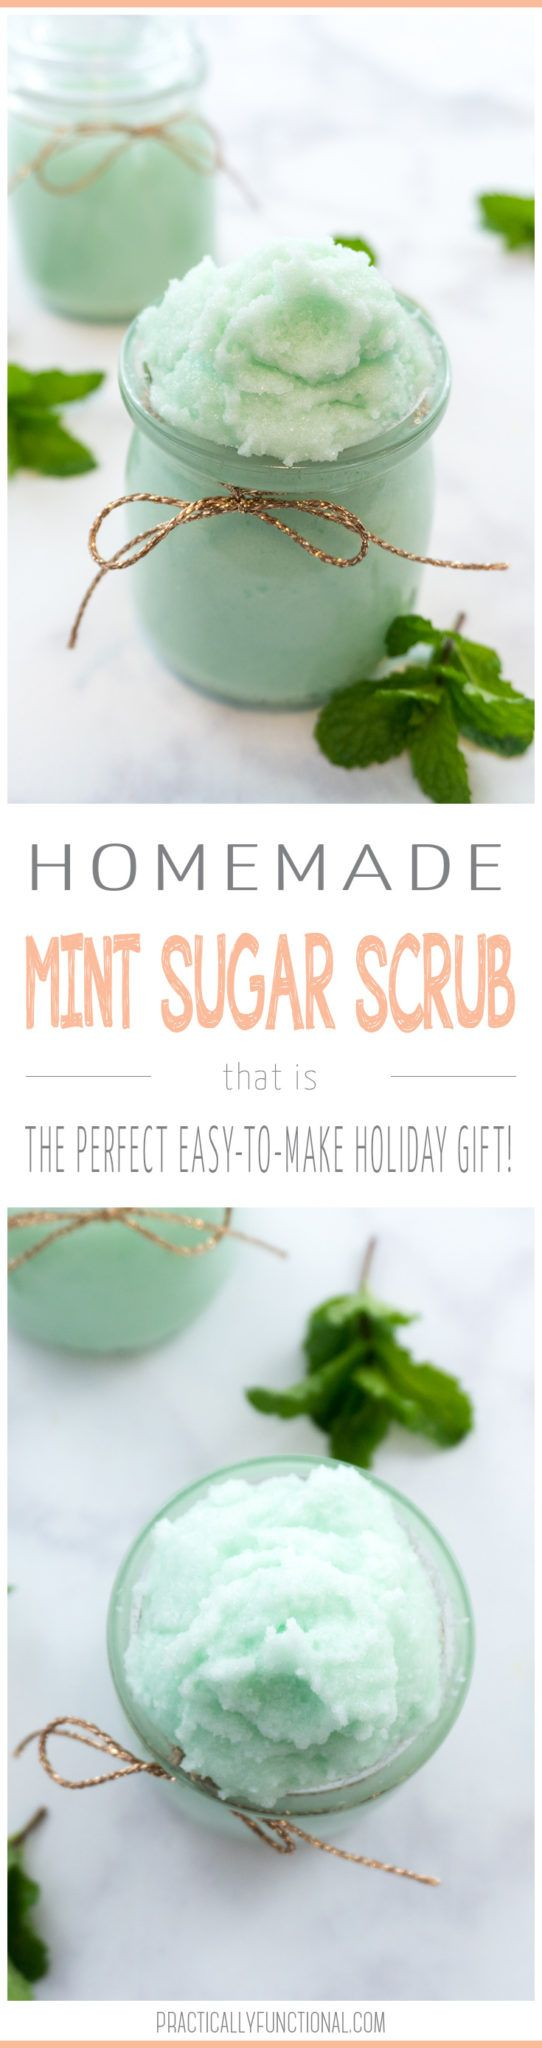 If you're looking for an easy holiday gift idea, try this homemade mint sugar scrub recipe! It comes together in seconds and is the perfect gift for your teacher, mail delivery person, hair dresser, everyone!